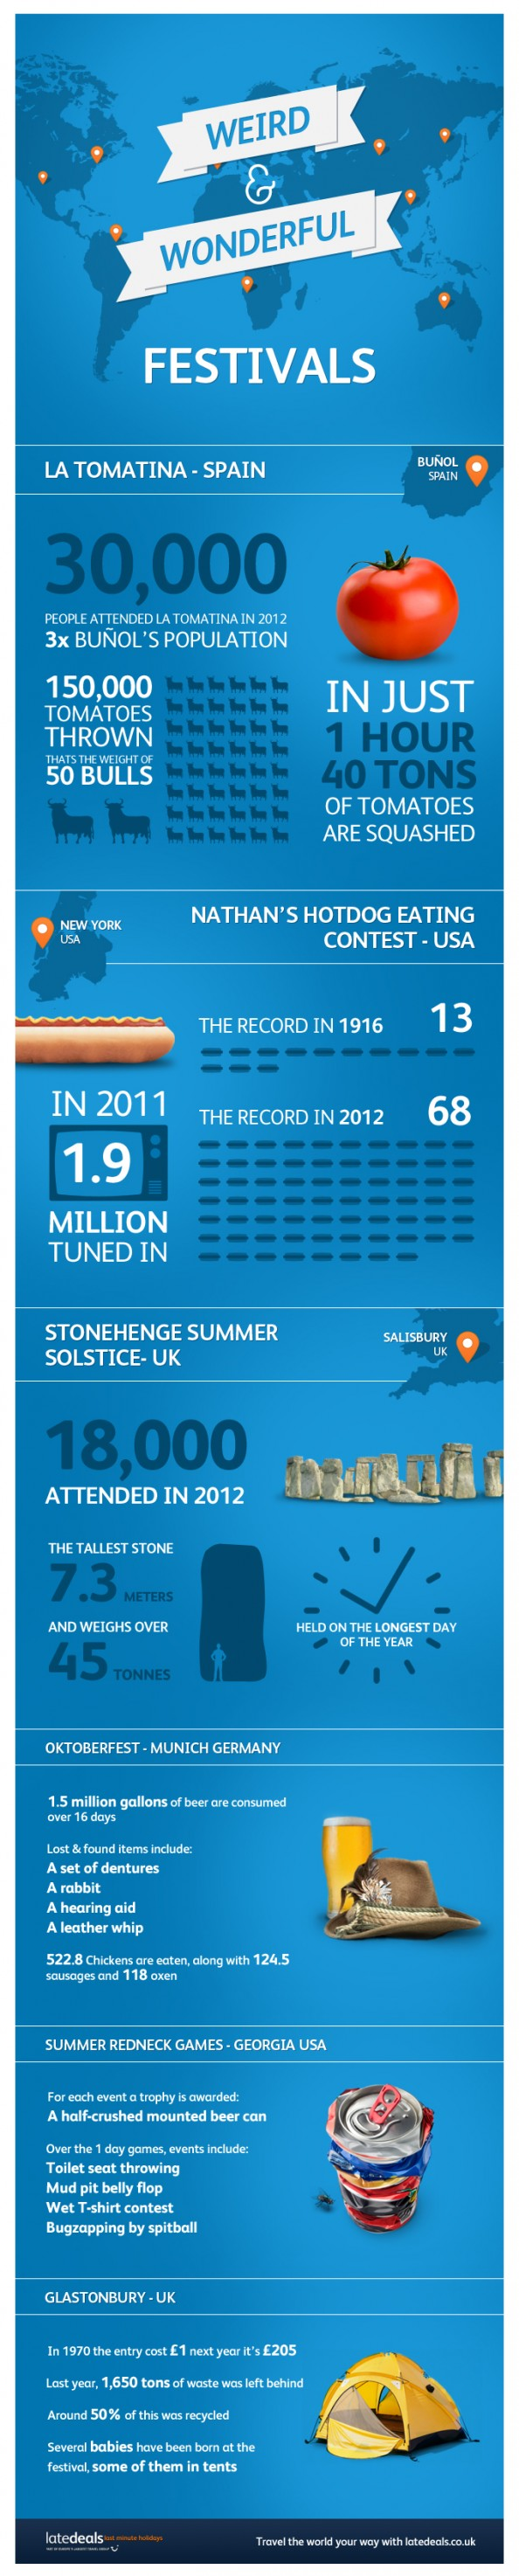 Strange and amazing facts about festivals